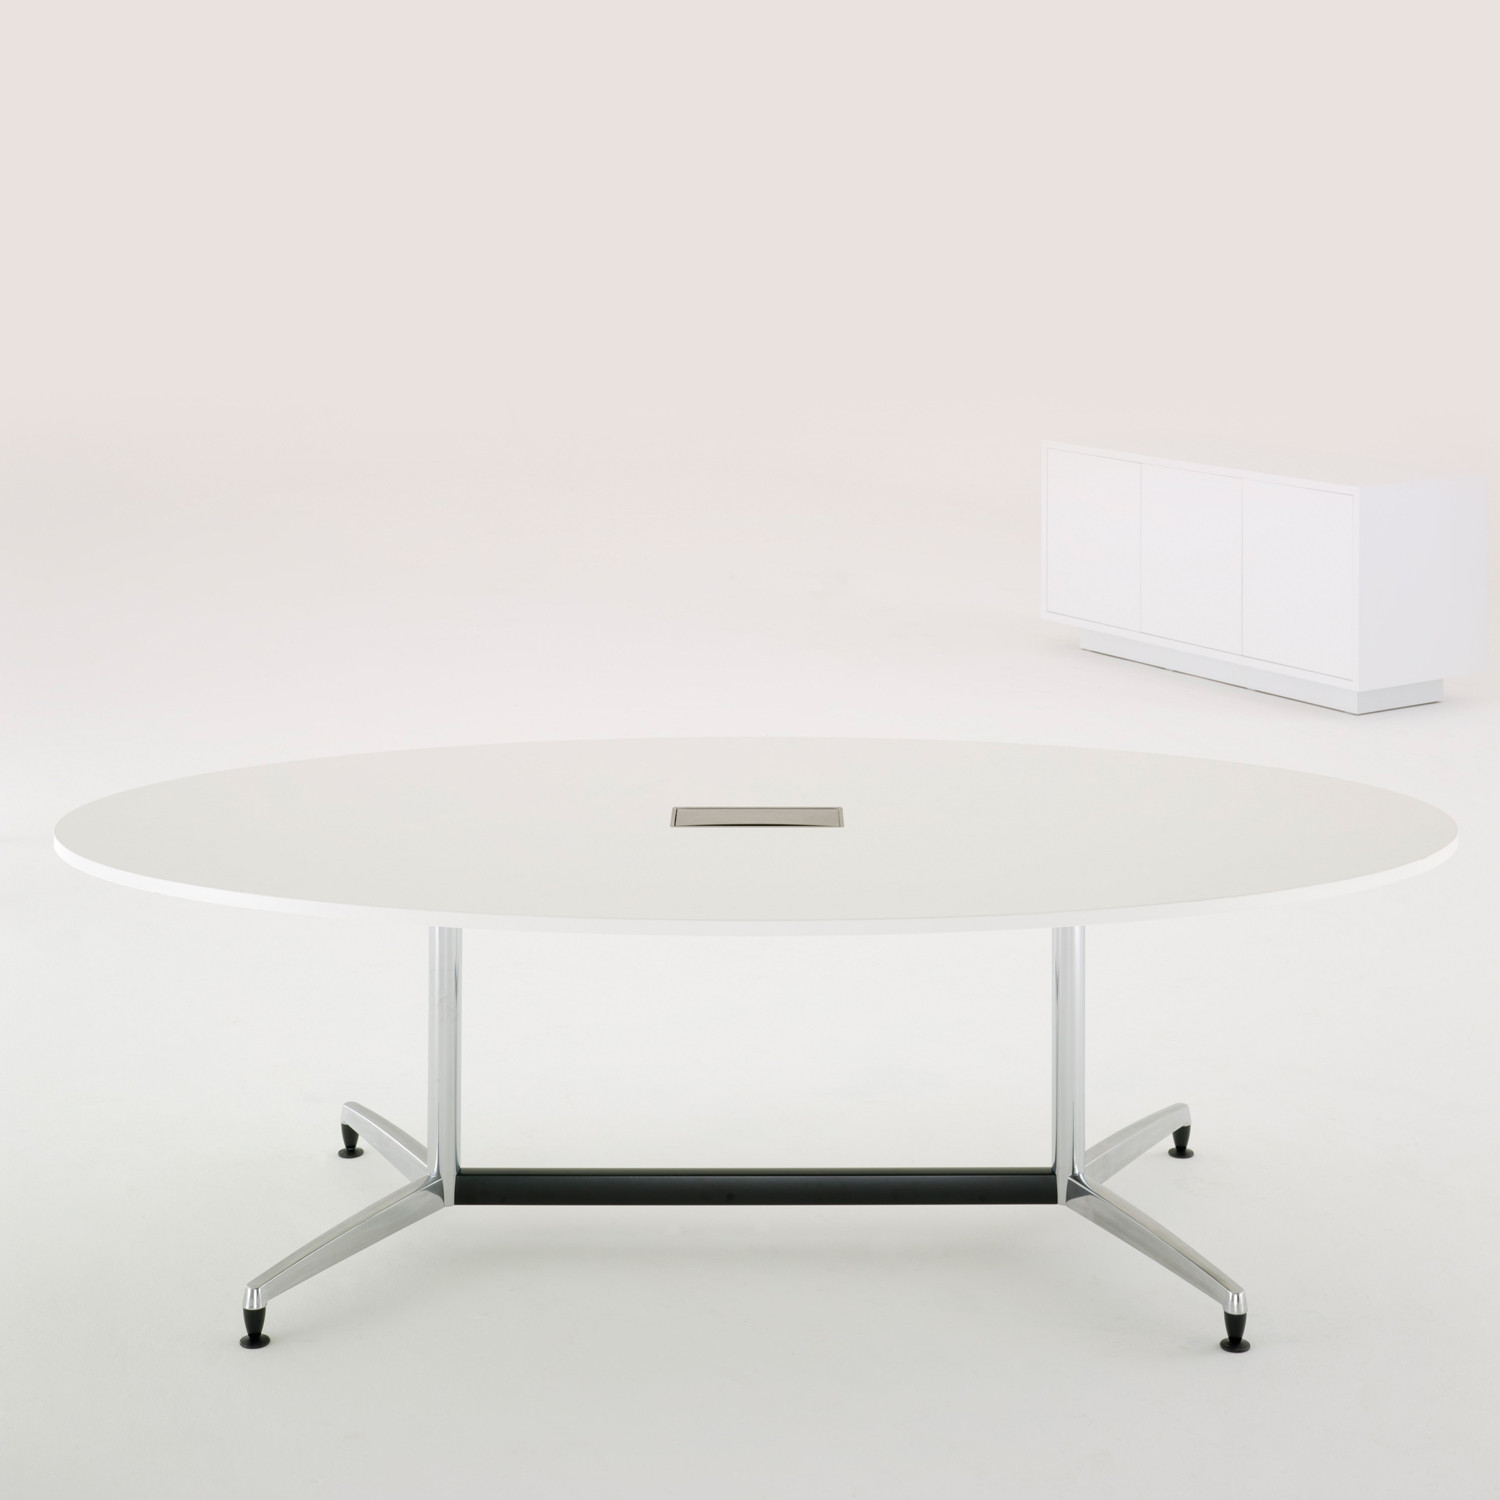 Nimbus round conference table